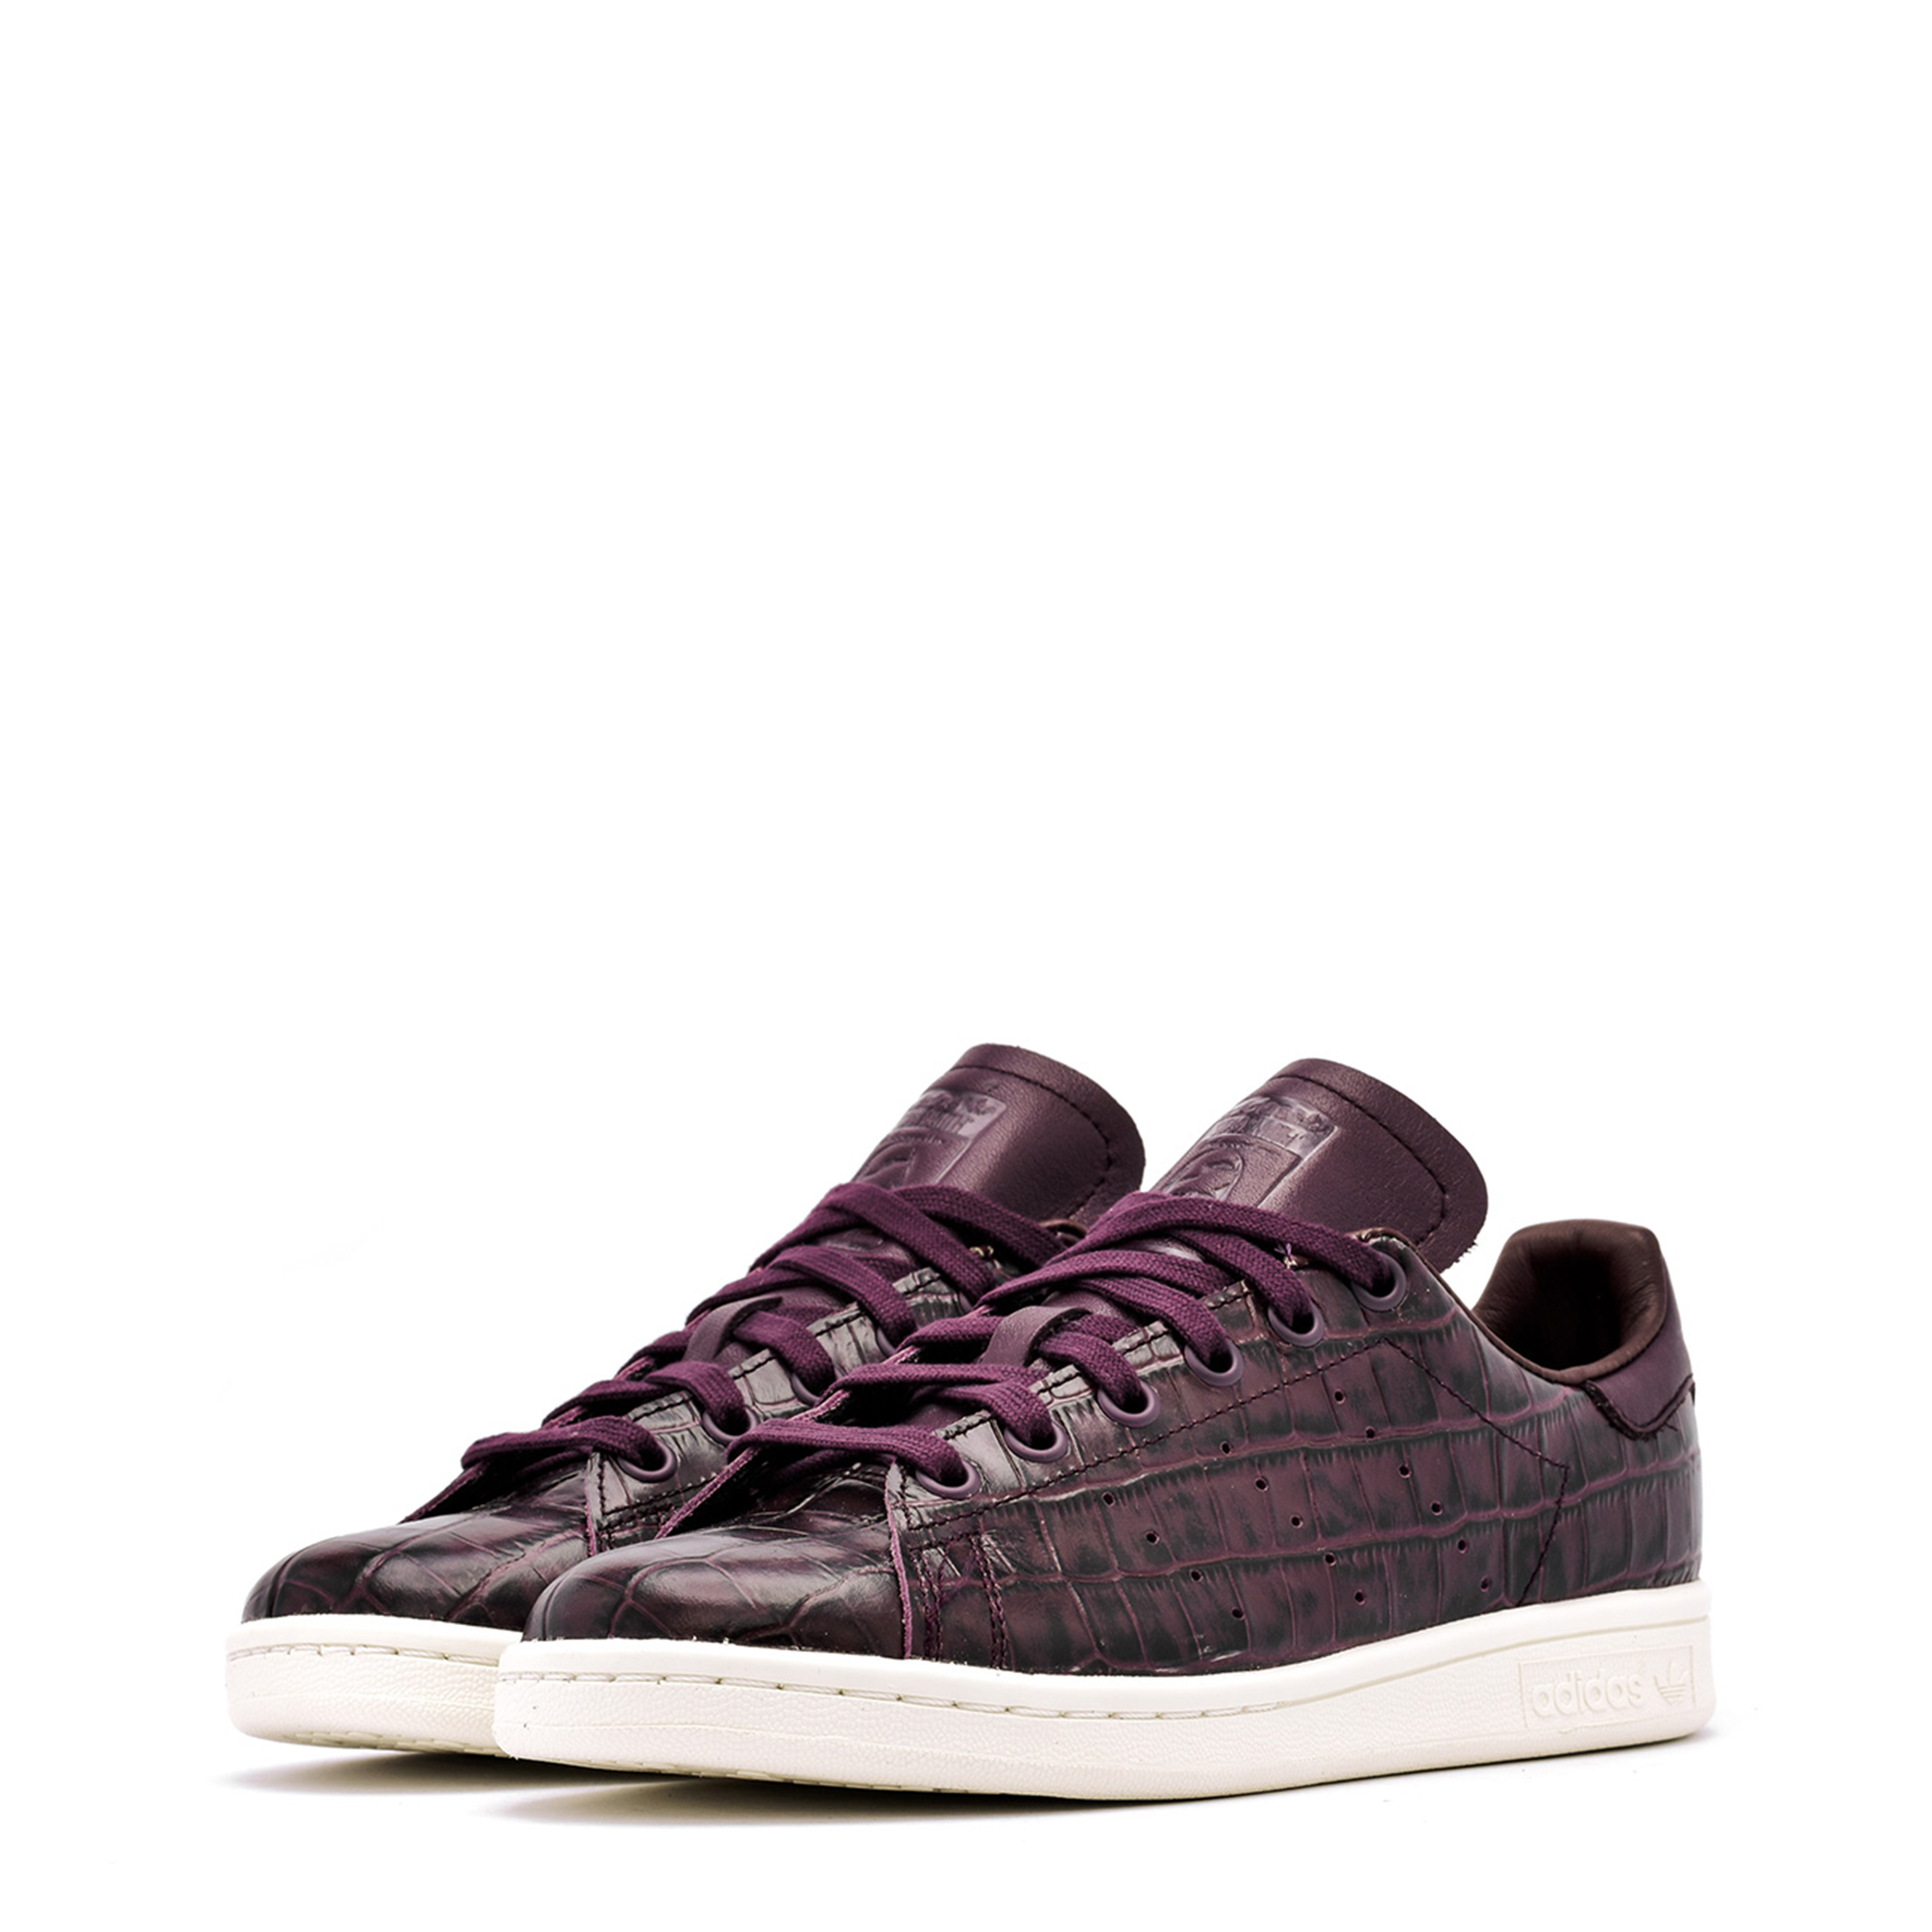 Baskets / Sport  Adidas StanSmith violet